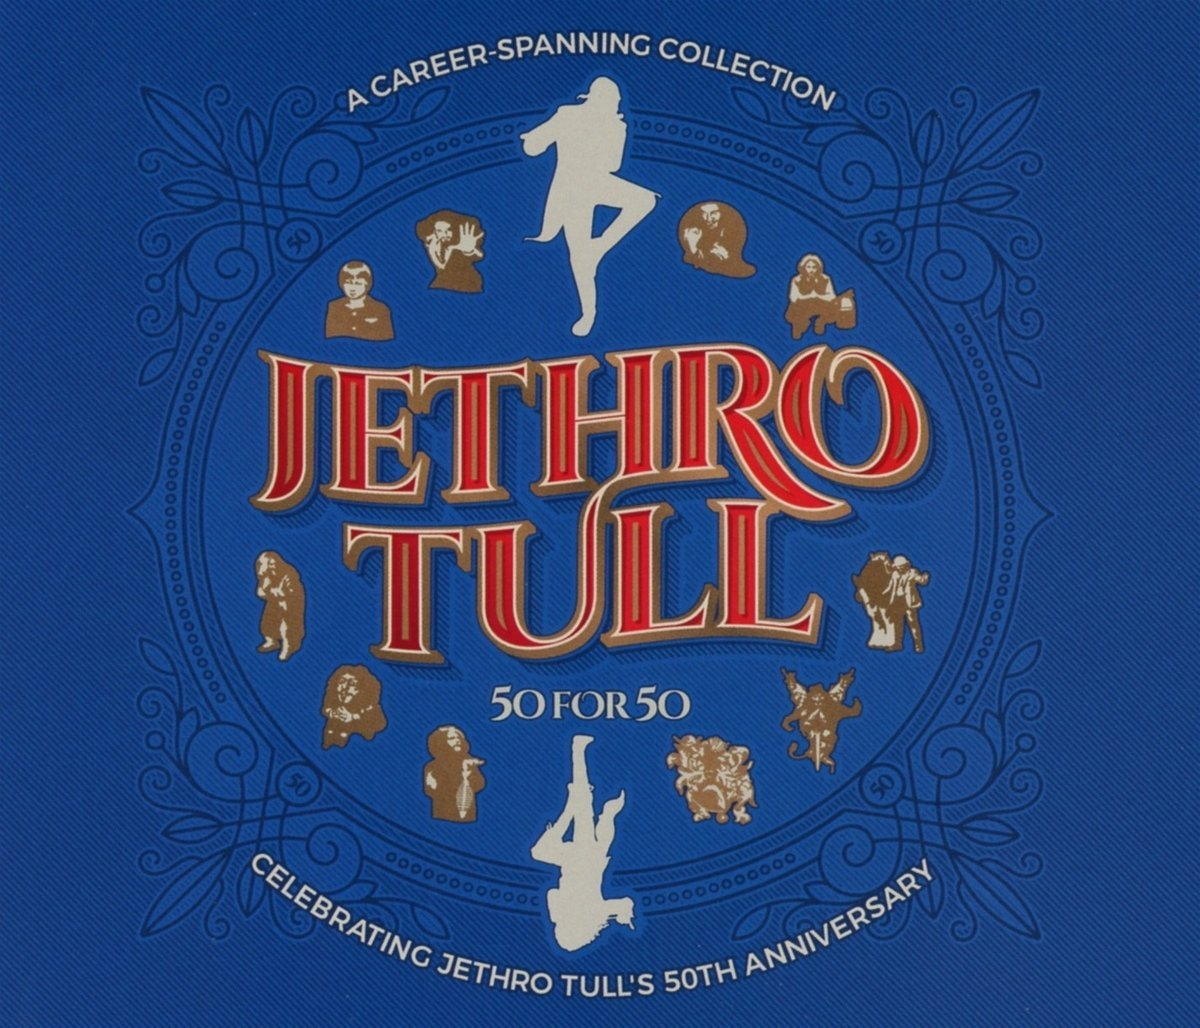 jethro-tull-50-for-50-25-5-2018-parlophone